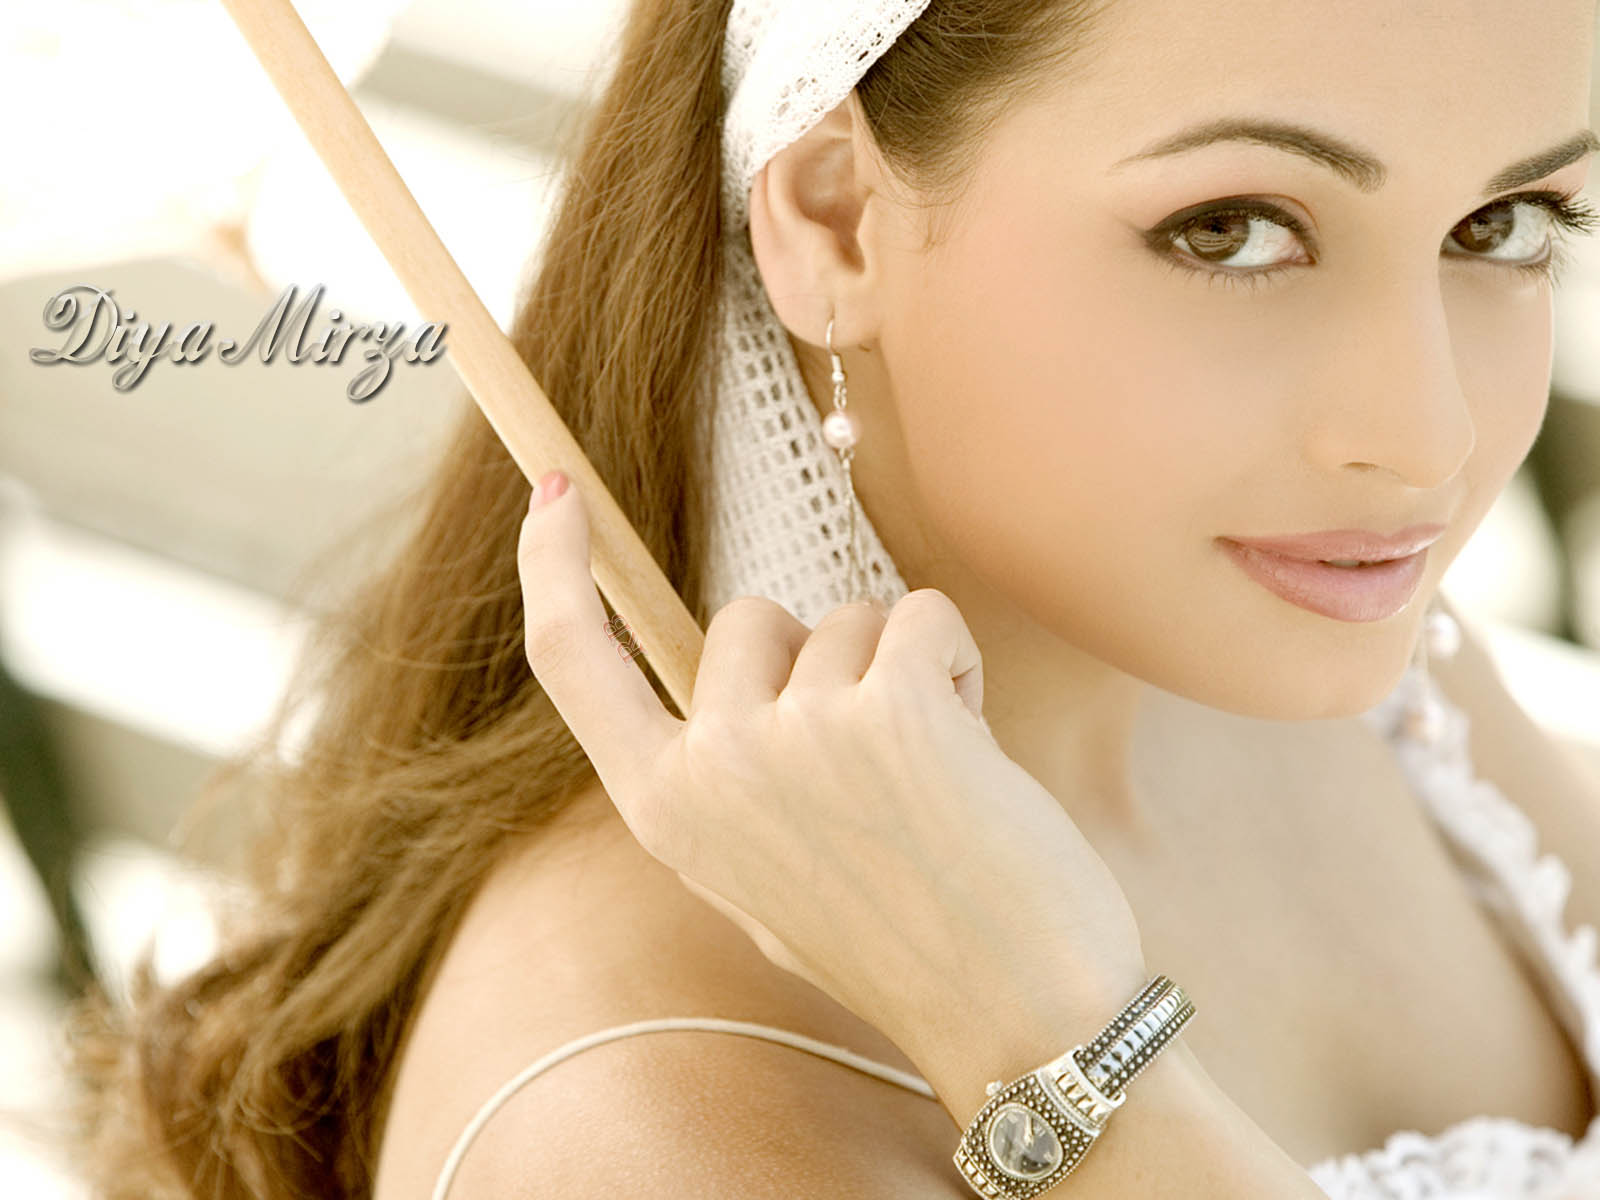 http://3.bp.blogspot.com/-uwi1bwk0z8Y/TuR7UdOD4yI/AAAAAAAAAkg/8nSaZHnmDSE/s1600/Bollywood-actress_diya_mirza_hot_close_up_wallpaper.jpg